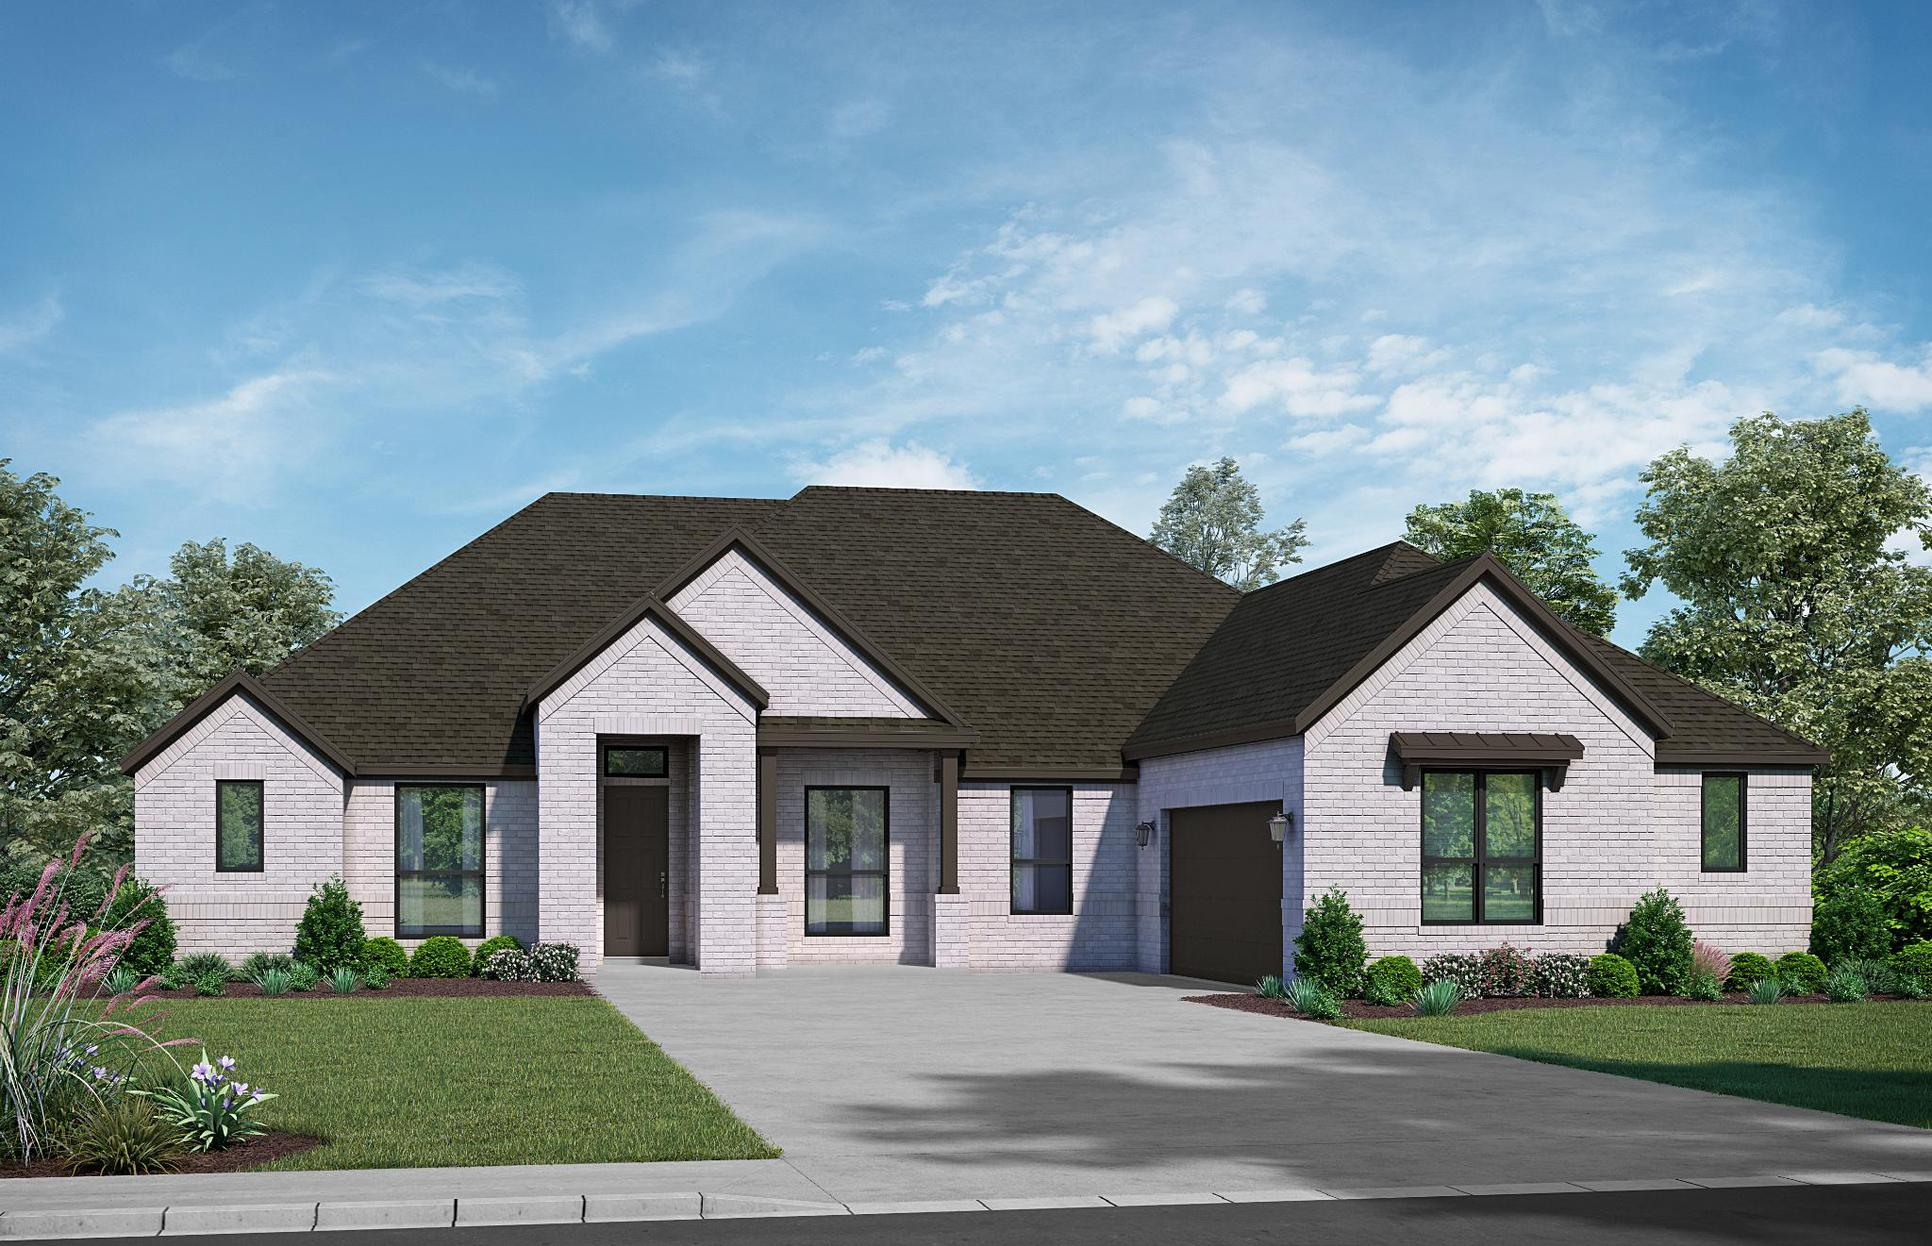 The Chateau - Elevation D. Images are artist renderings and will differ from the actual home built.:Elevation D